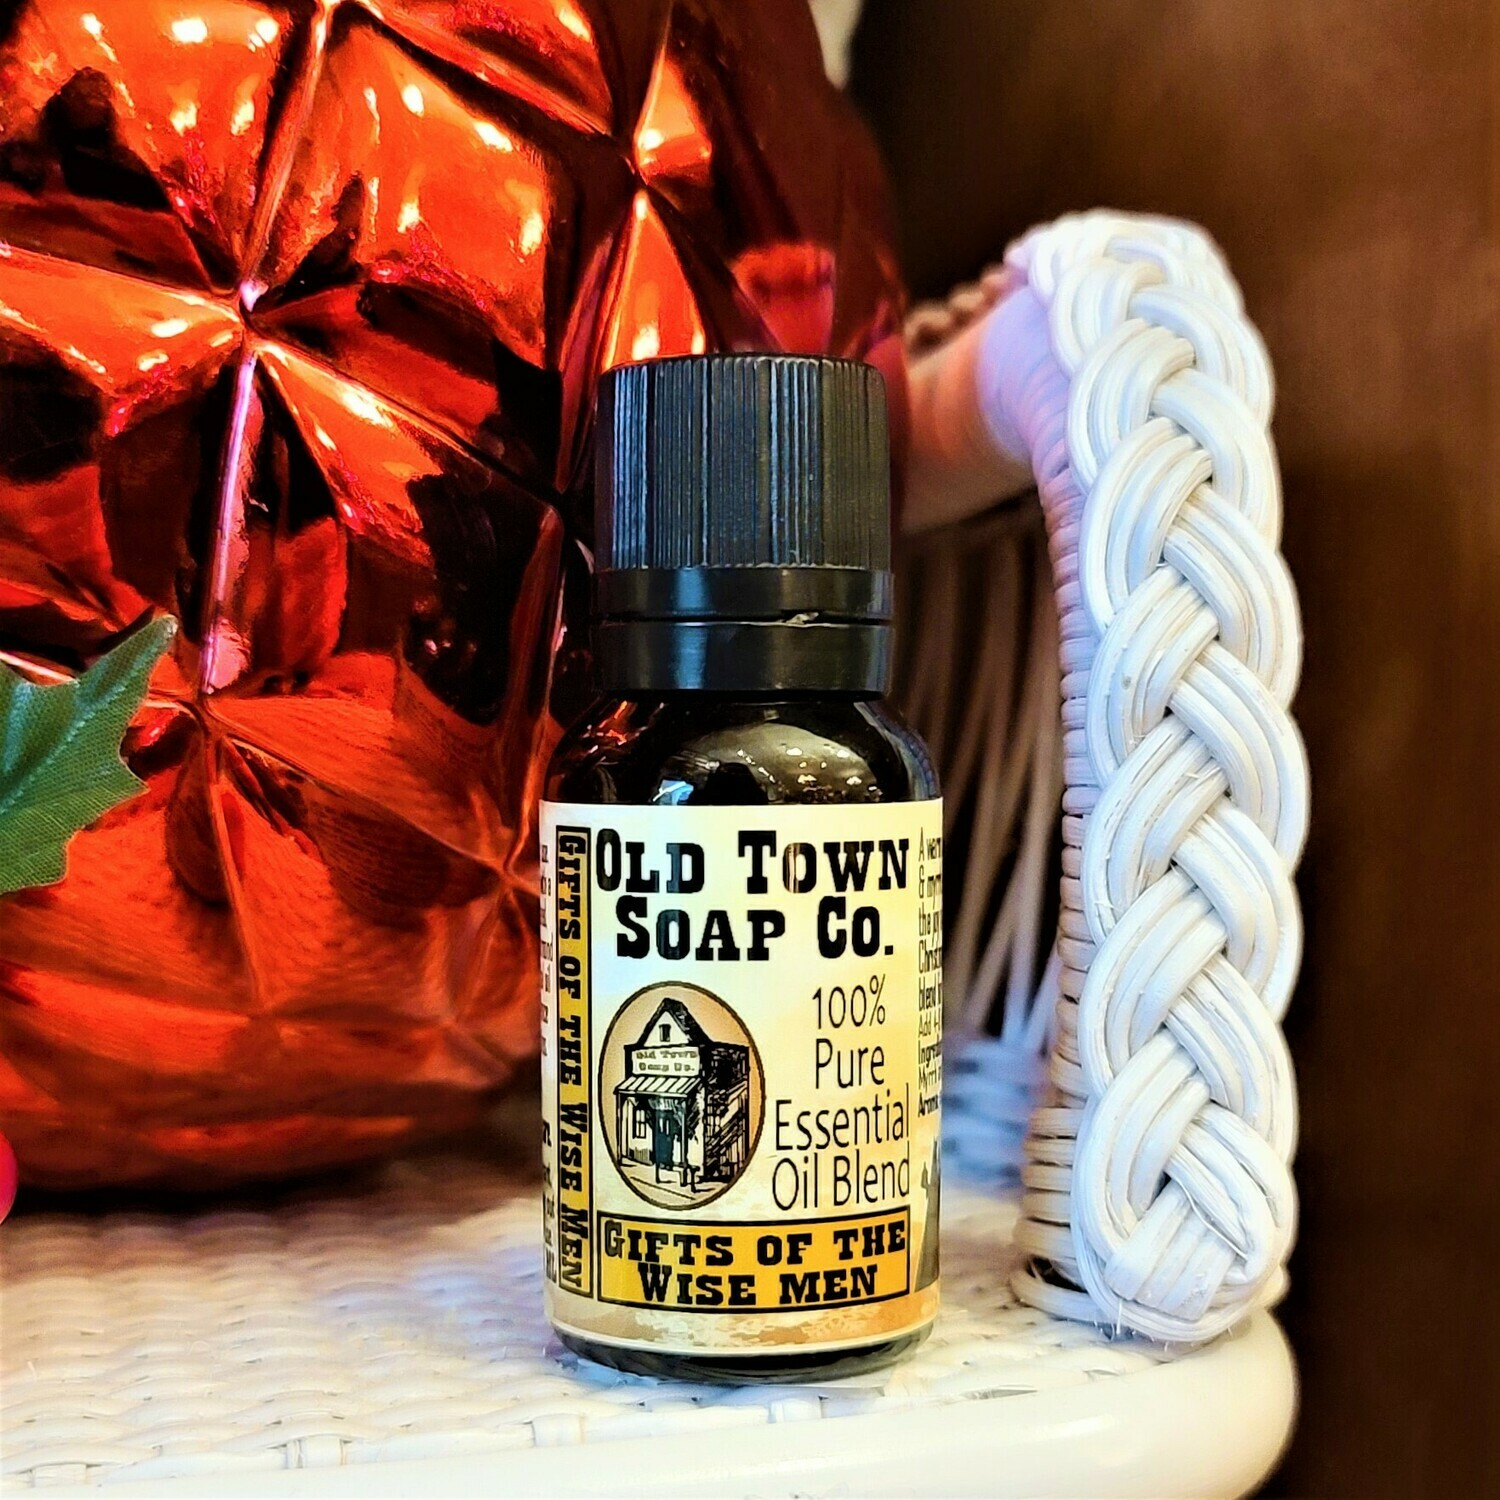 OTSC Gifts of the Wise Men -Essential Oil Blend